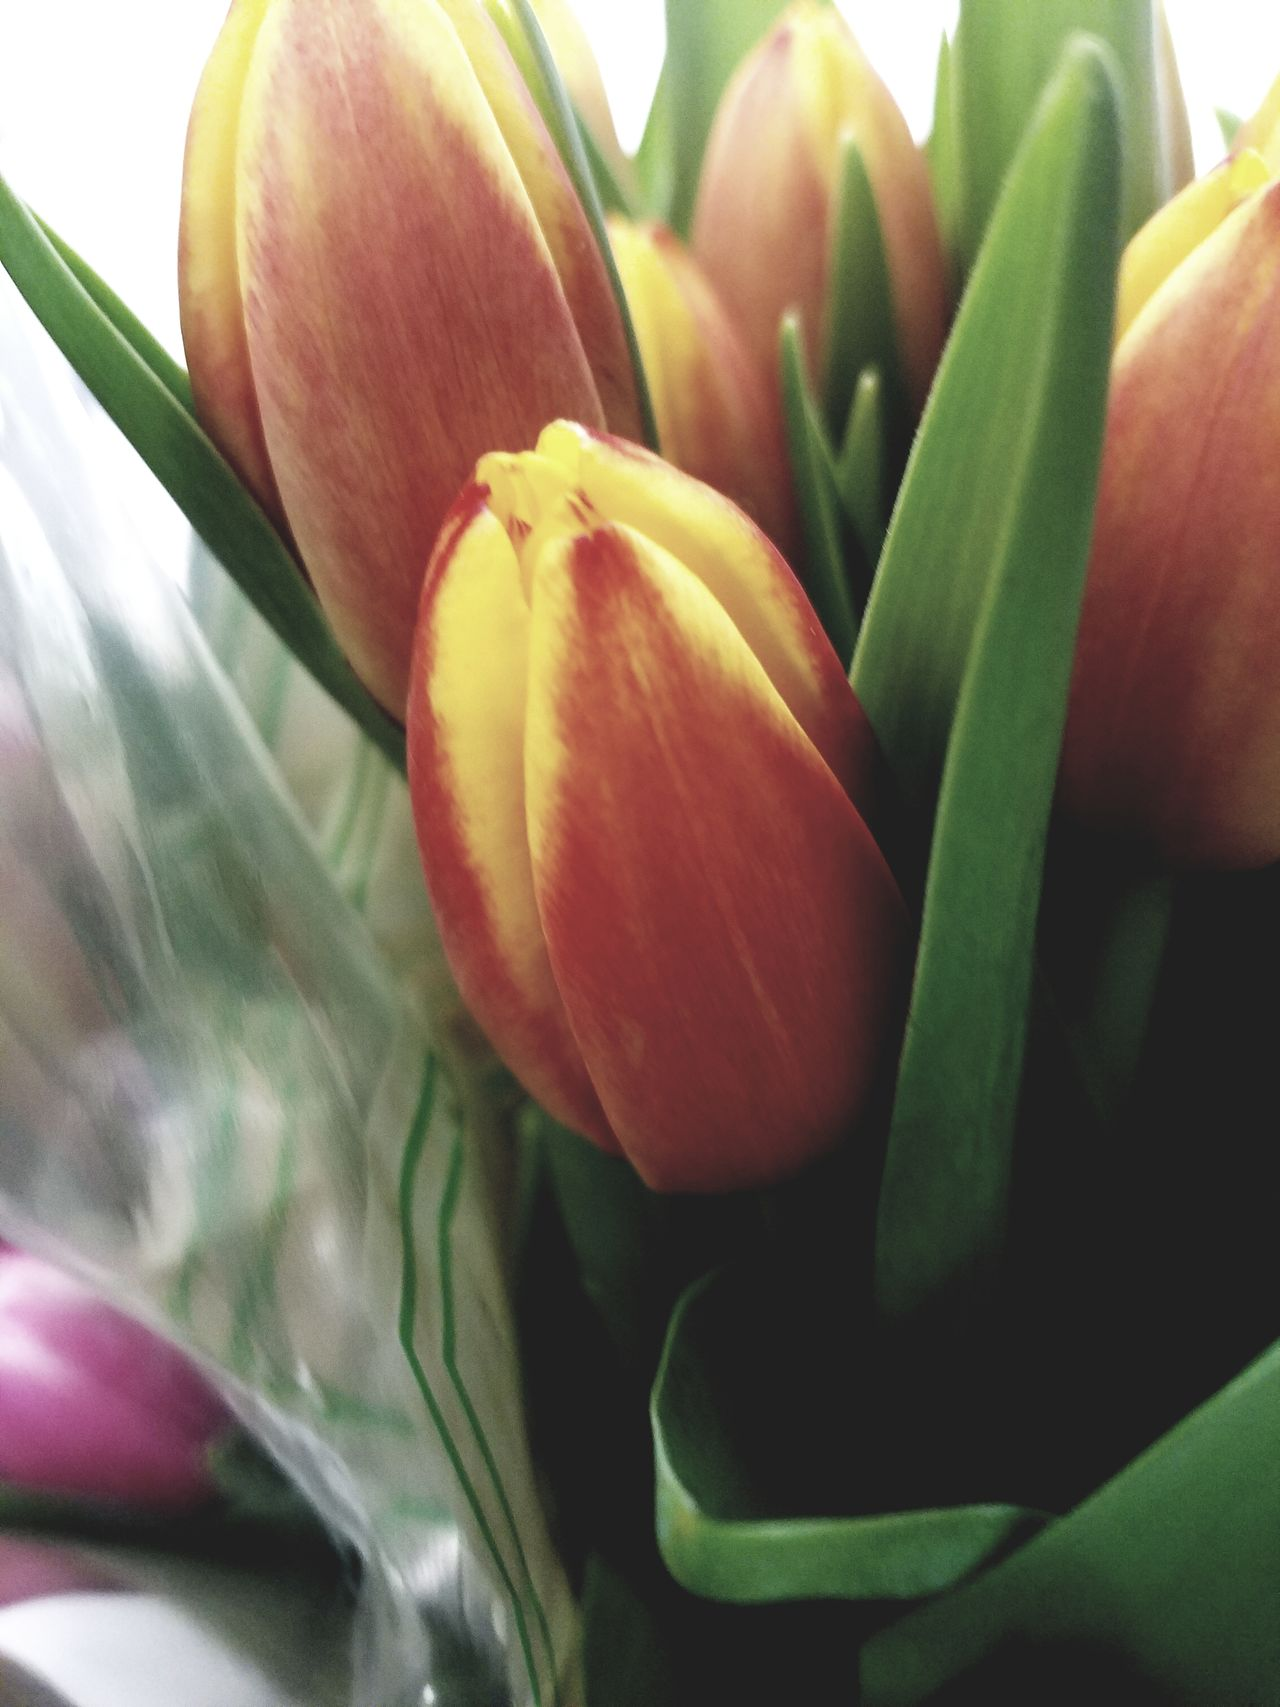 Flower Freshness Nature Fragility Beauty In Nature Close-up Growth Tulip Plant No People Day Blooming Flower Head Backgrounds Outdoors Indoors  EyeEmNewHere The Week Of Eyeem Background Pattern Arrangement Flowers Bouquet Freshness Nature